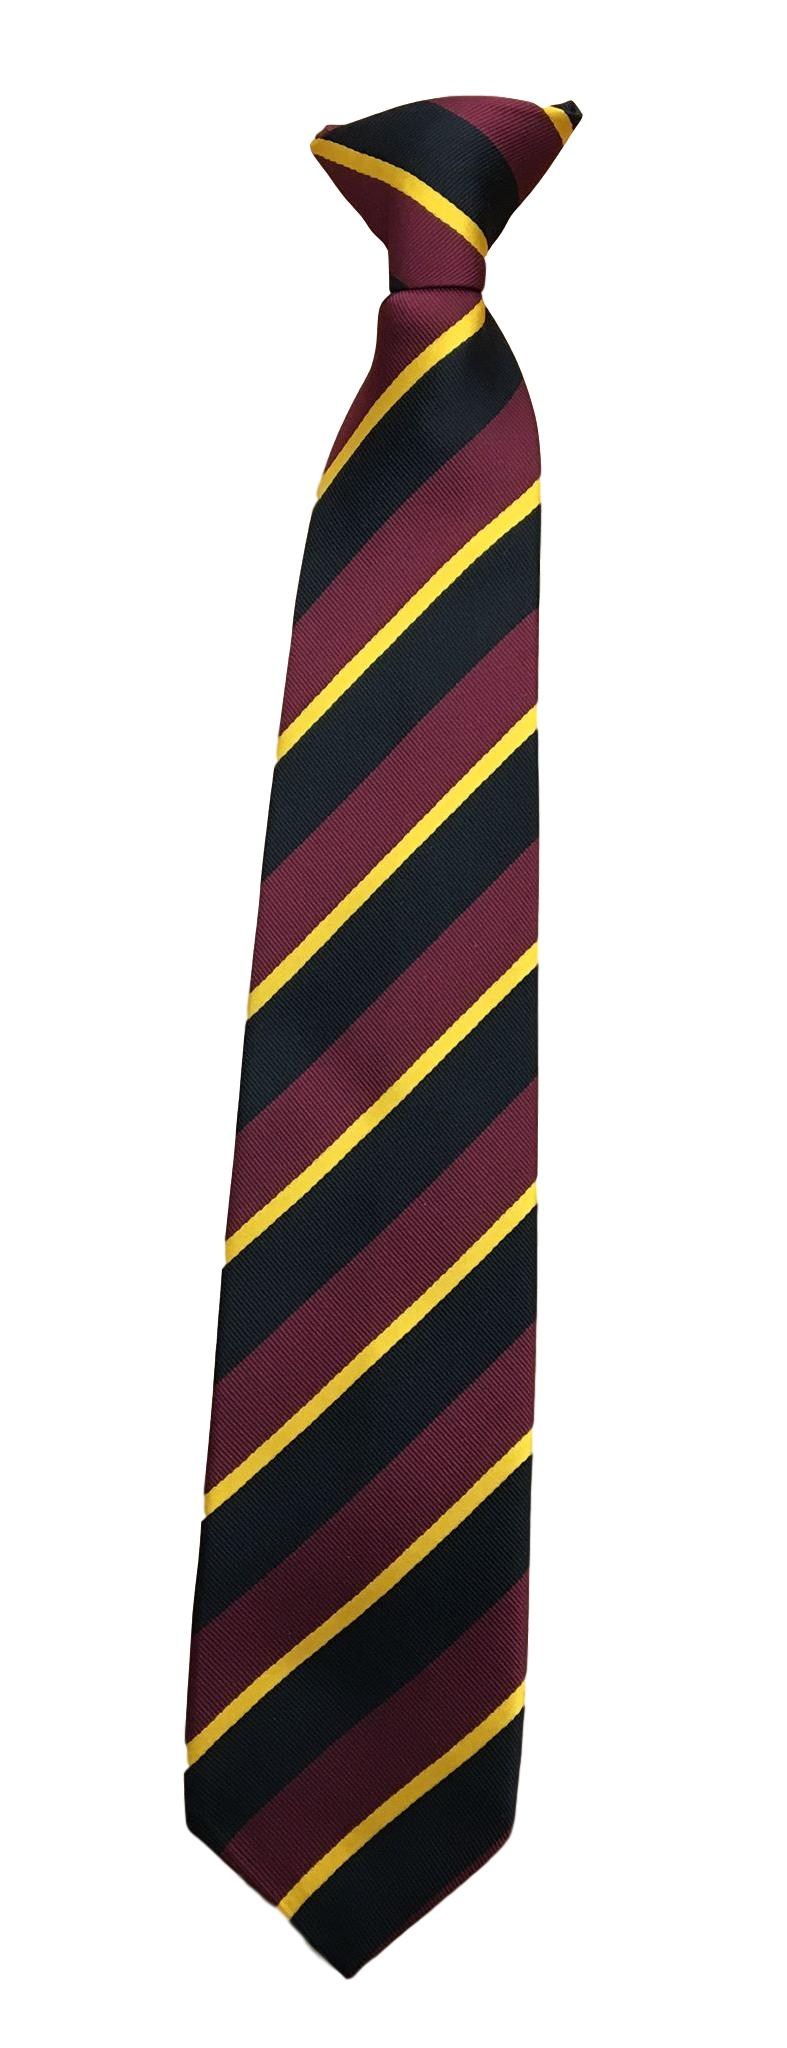 Hawthorn High School Black Clip On Tie (Years 9-11)